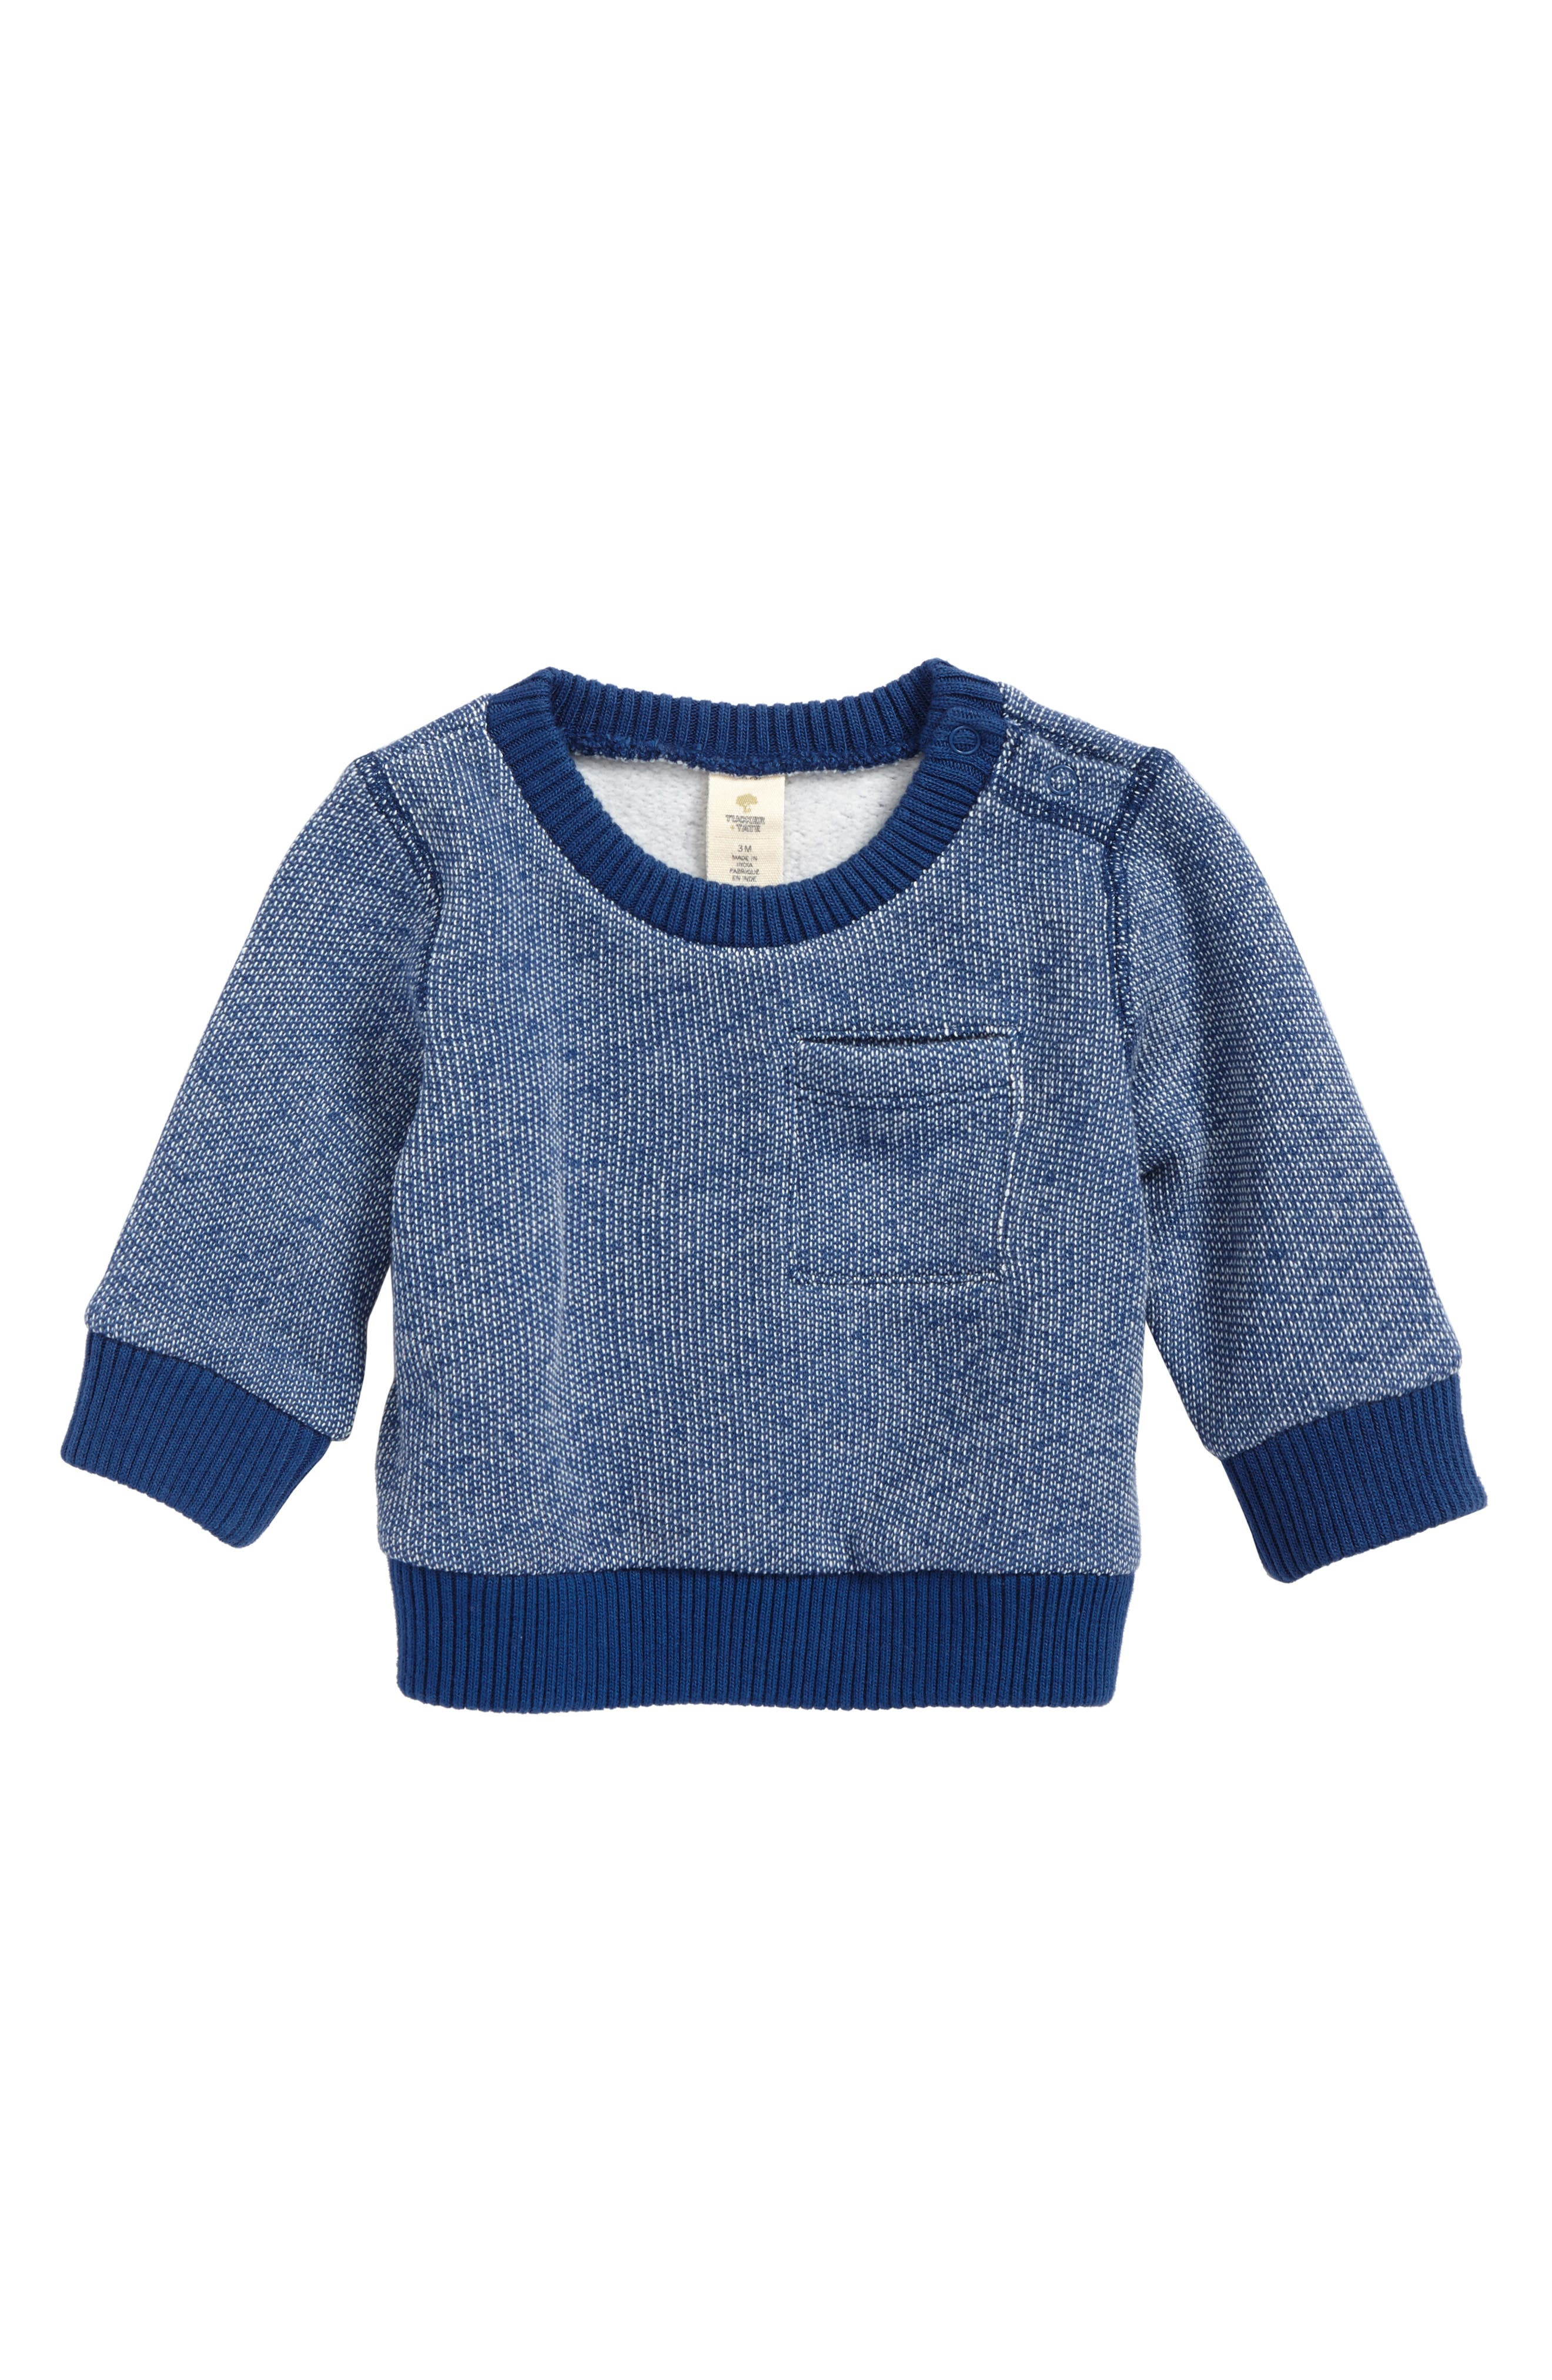 Tucker + Tate Brushed Fleece Sweatshirt (Baby Boys)